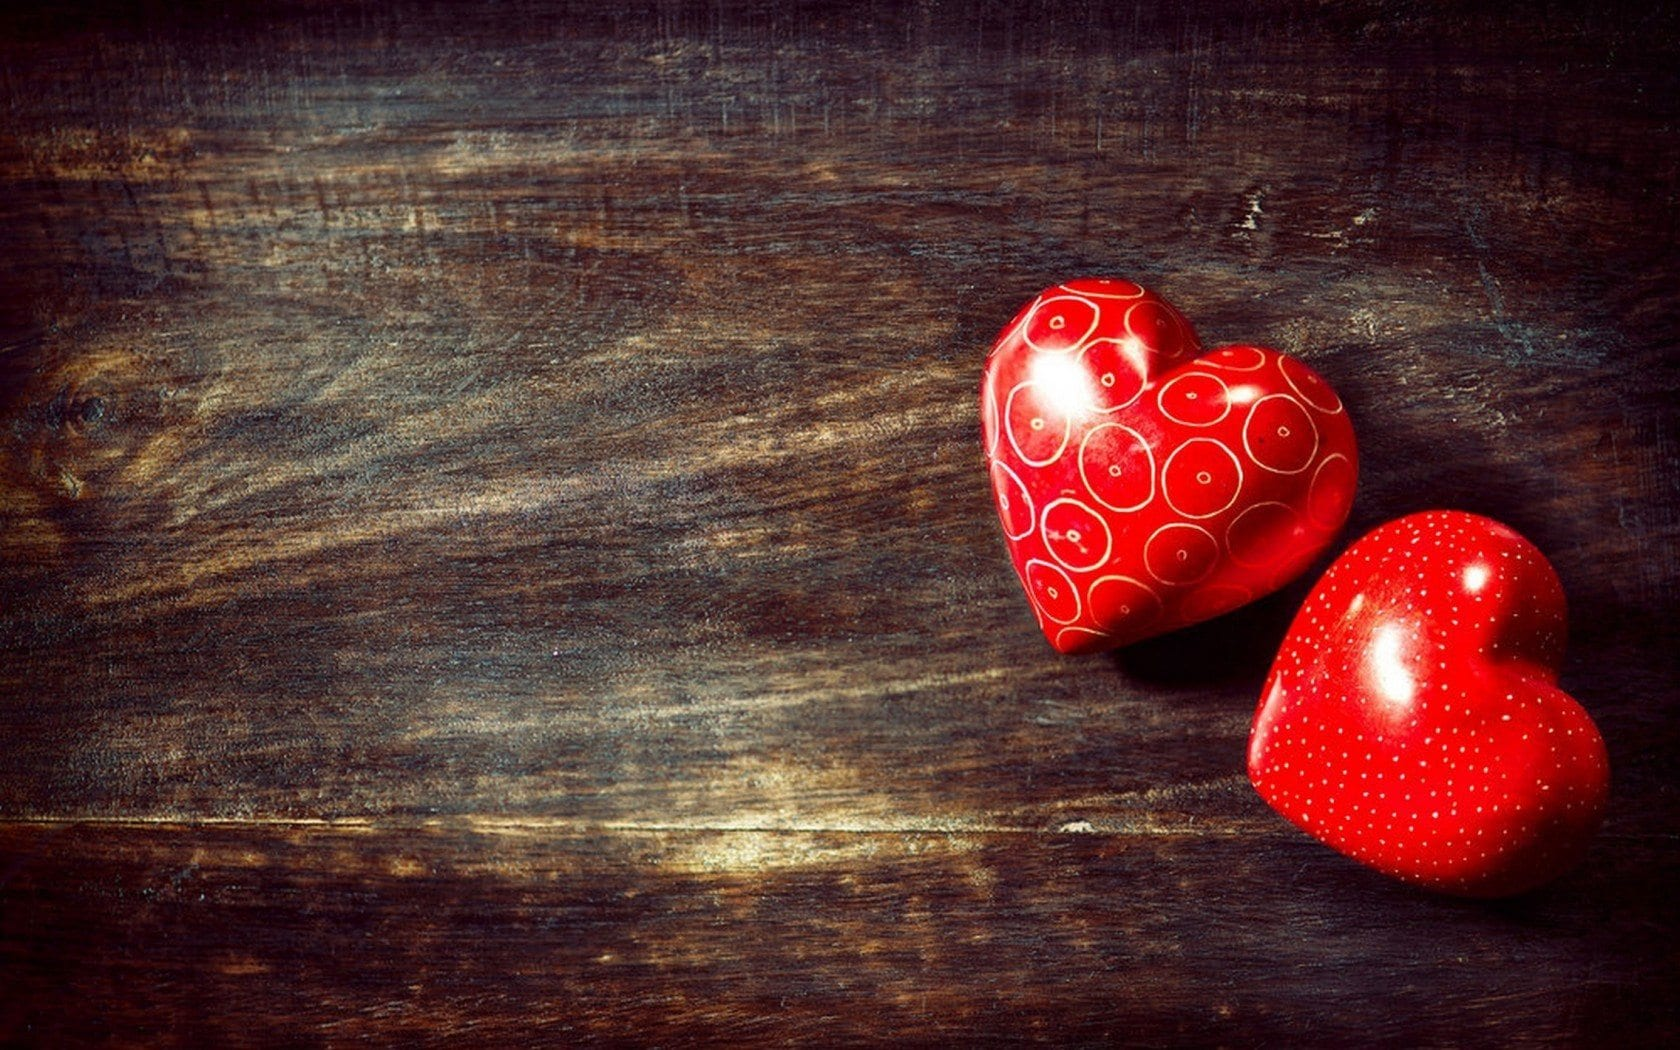 Love Wallpapers In Hd : Love Images / Love HD Wallpaper